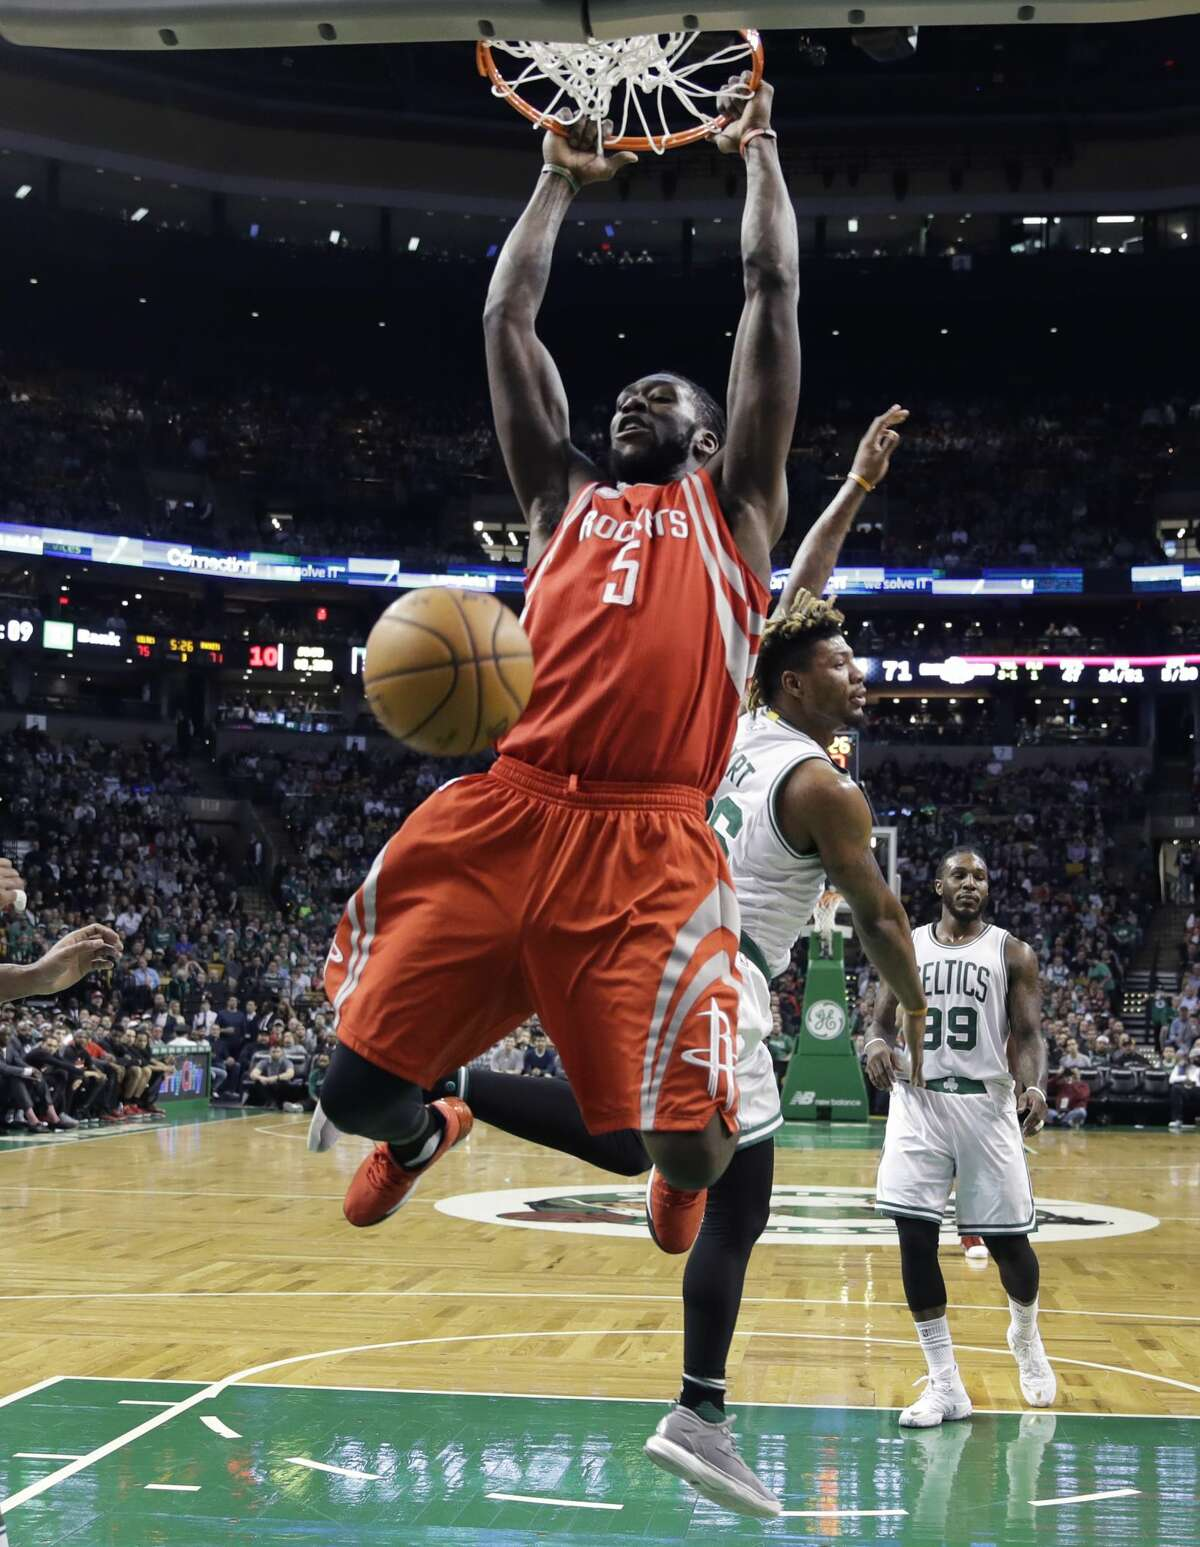 Houston Rockets forward Montrezl Harrell (5) slams a dunk against the Boston Celtics during the second half of an NBA basketball game in Boston, Wednesday, Jan. 25, 2017. The Celtics defeated the Rockets 120-109. (AP Photo/Charles Krupa)